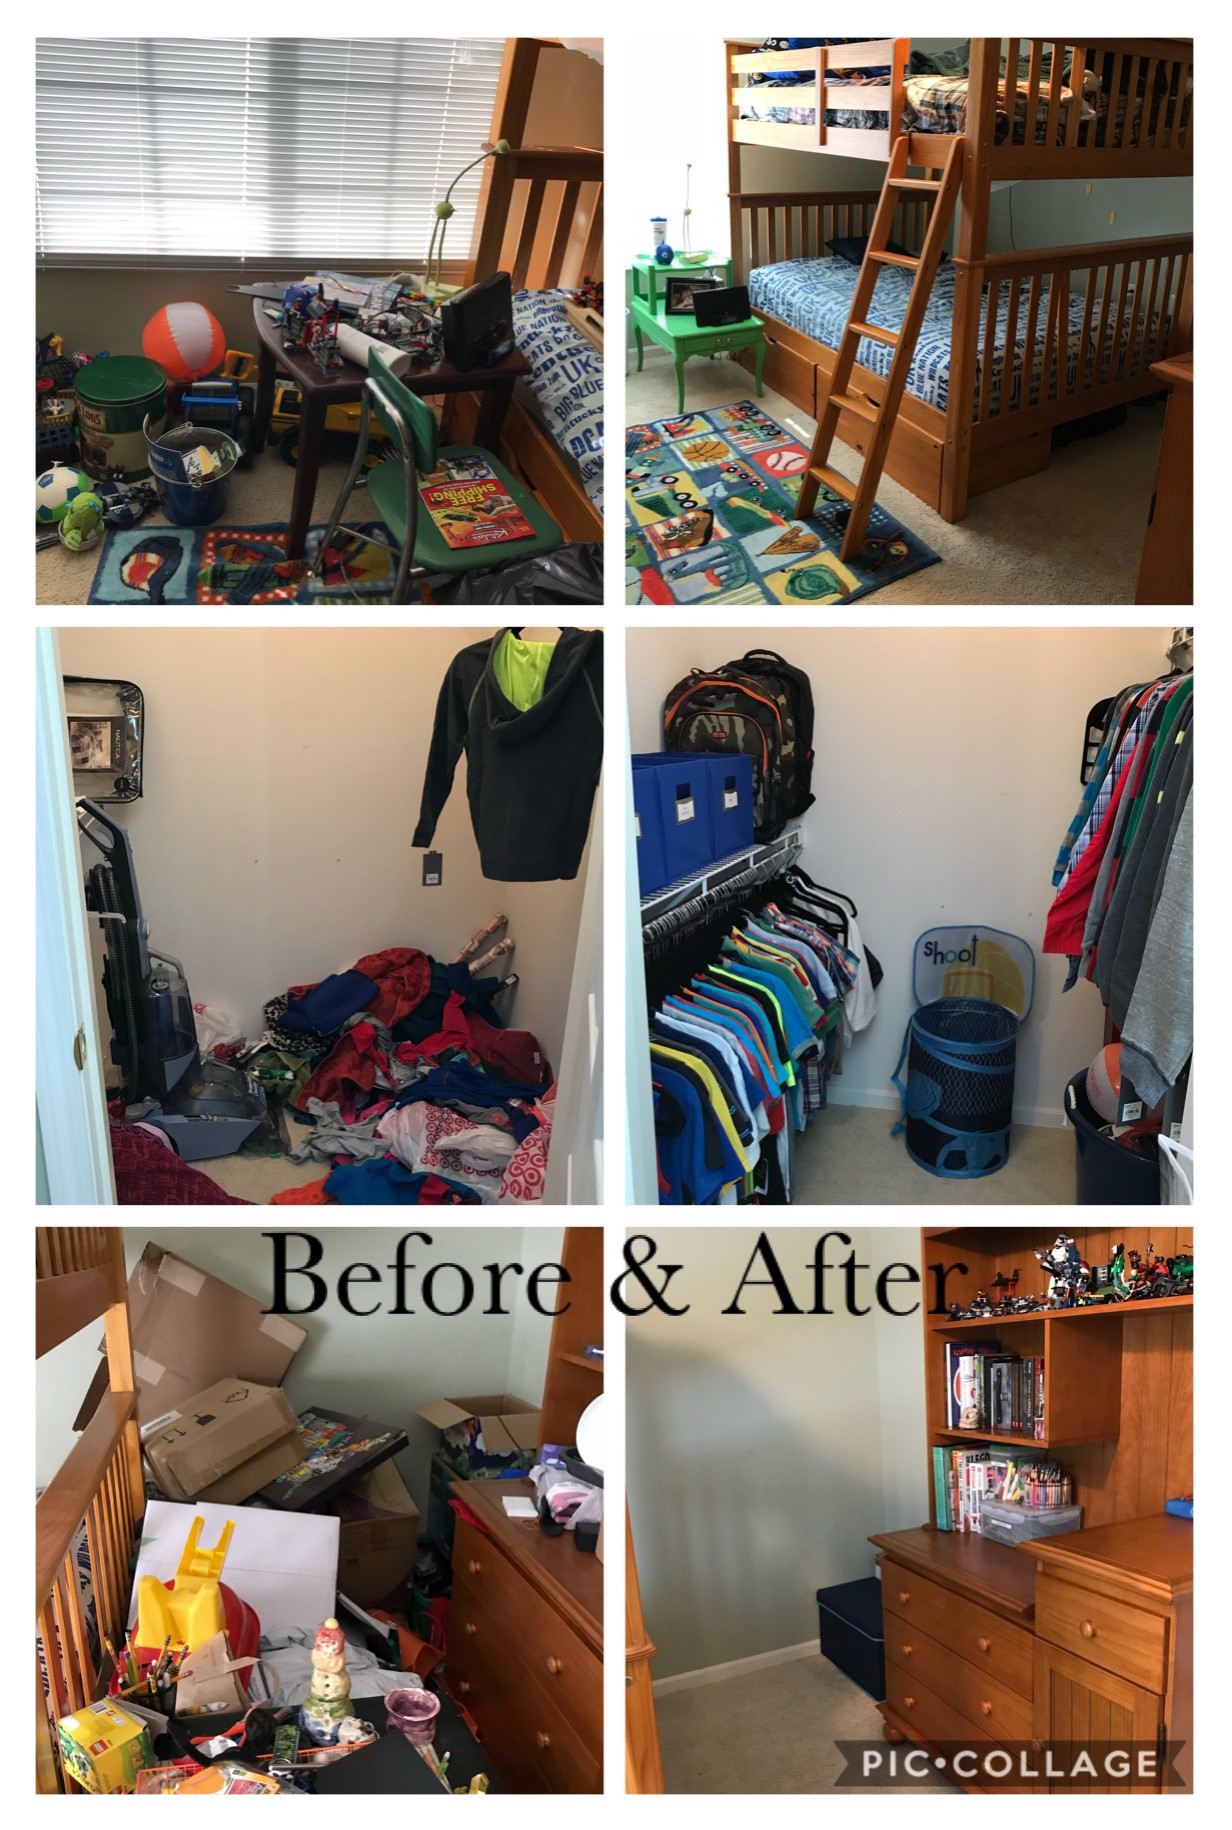 Child's room and closet before and after